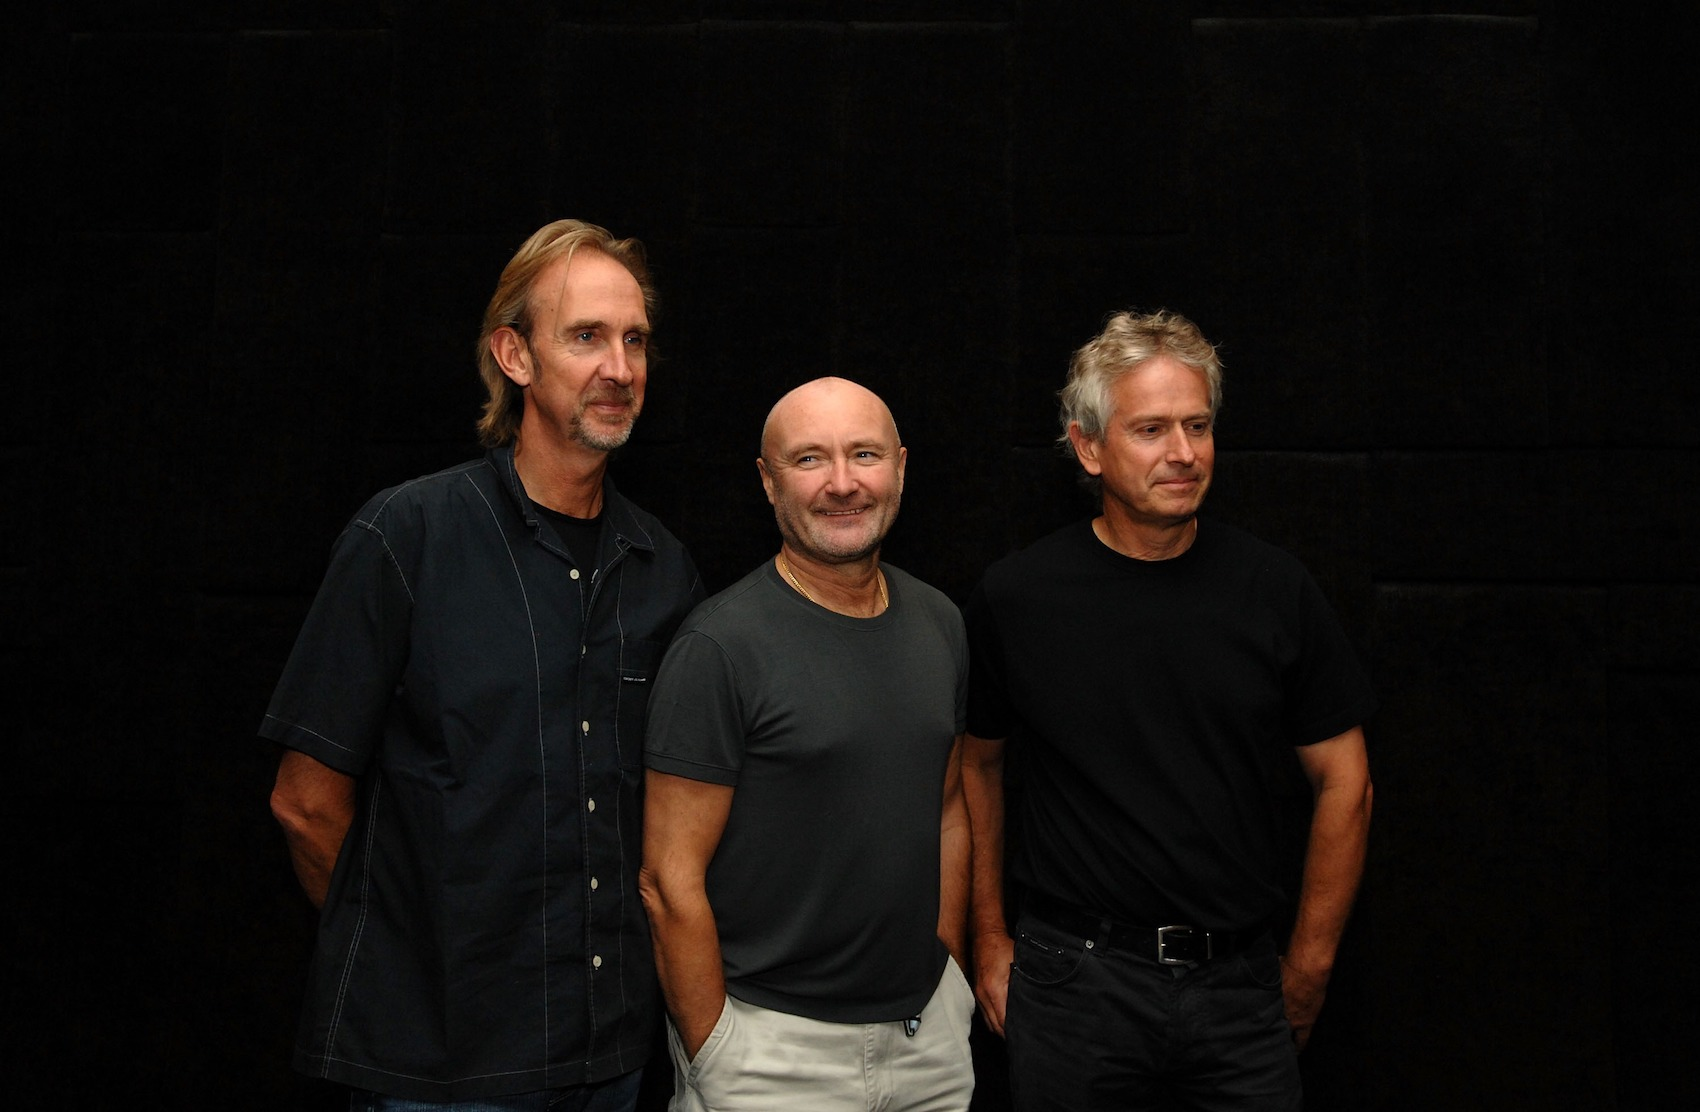 Genesis Reunion Tour May Now Come To America This Fall